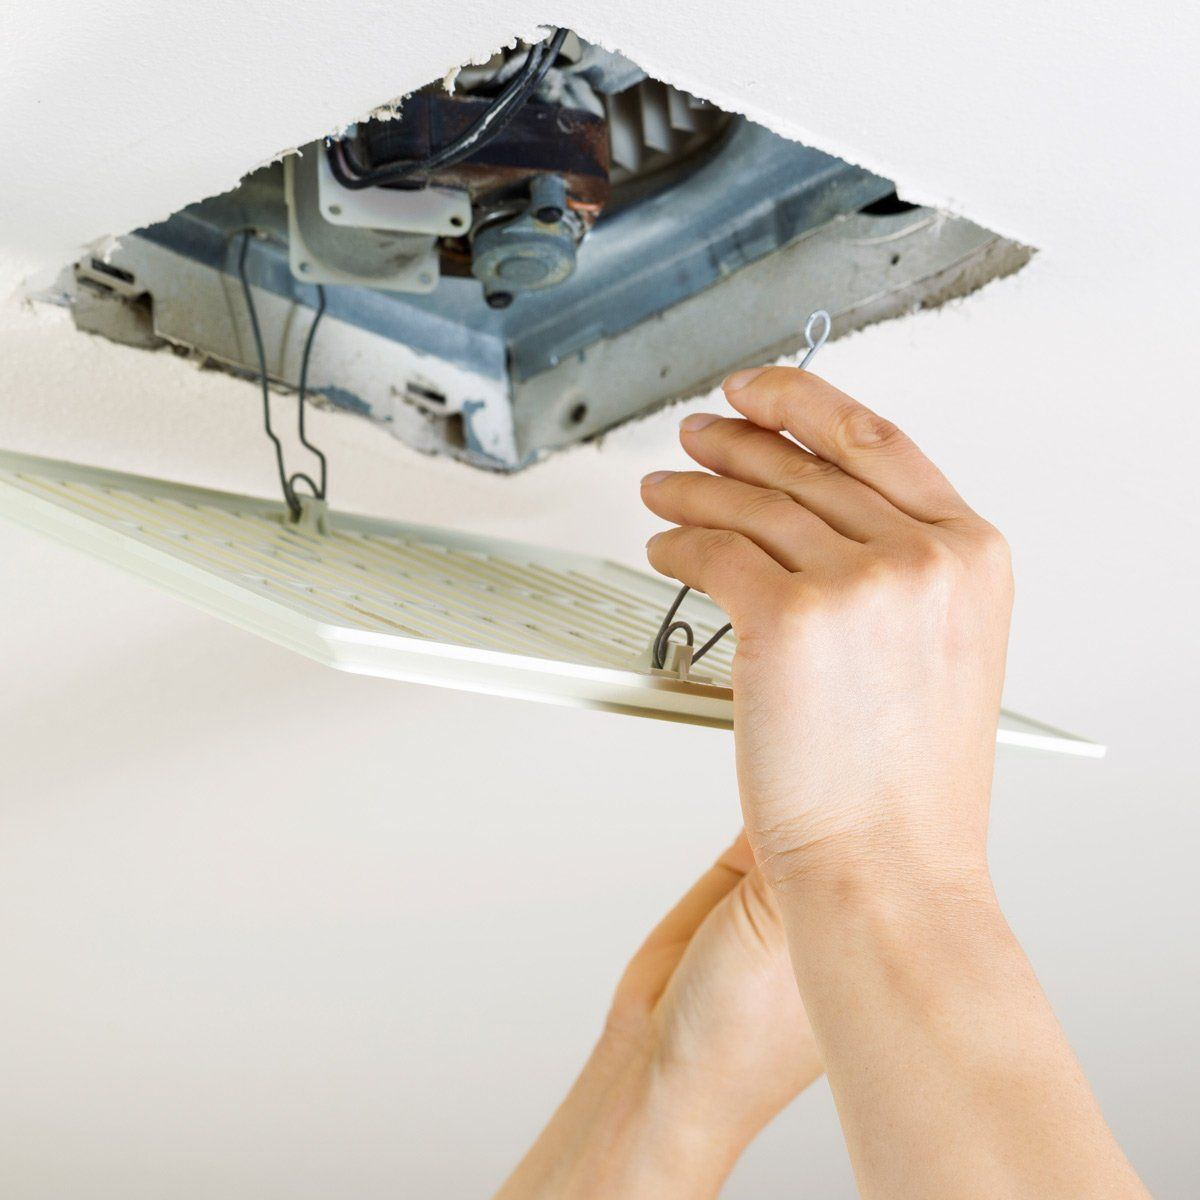 How To Clean A Bathroom Exhaust Fan In 2020 Bathroom Exhaust Fan Ceiling Fan Bathroom Bathroom Vent